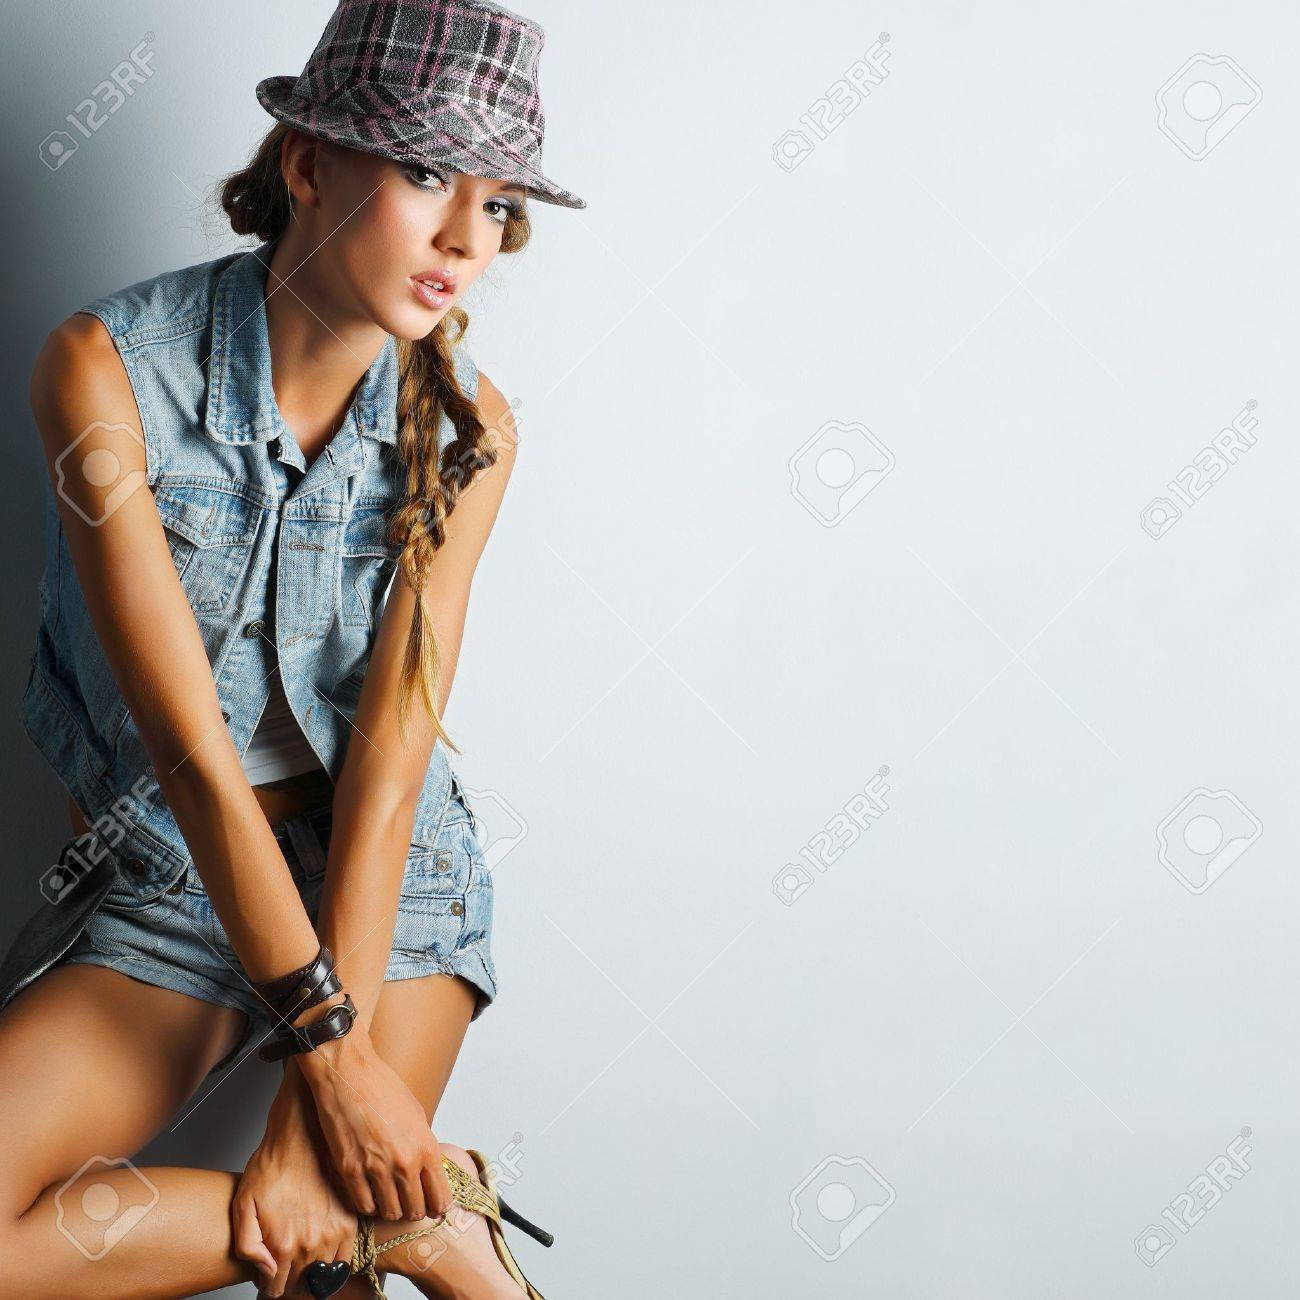 A photo of beautiful girl is in fashion style Stock Photo - 10358158